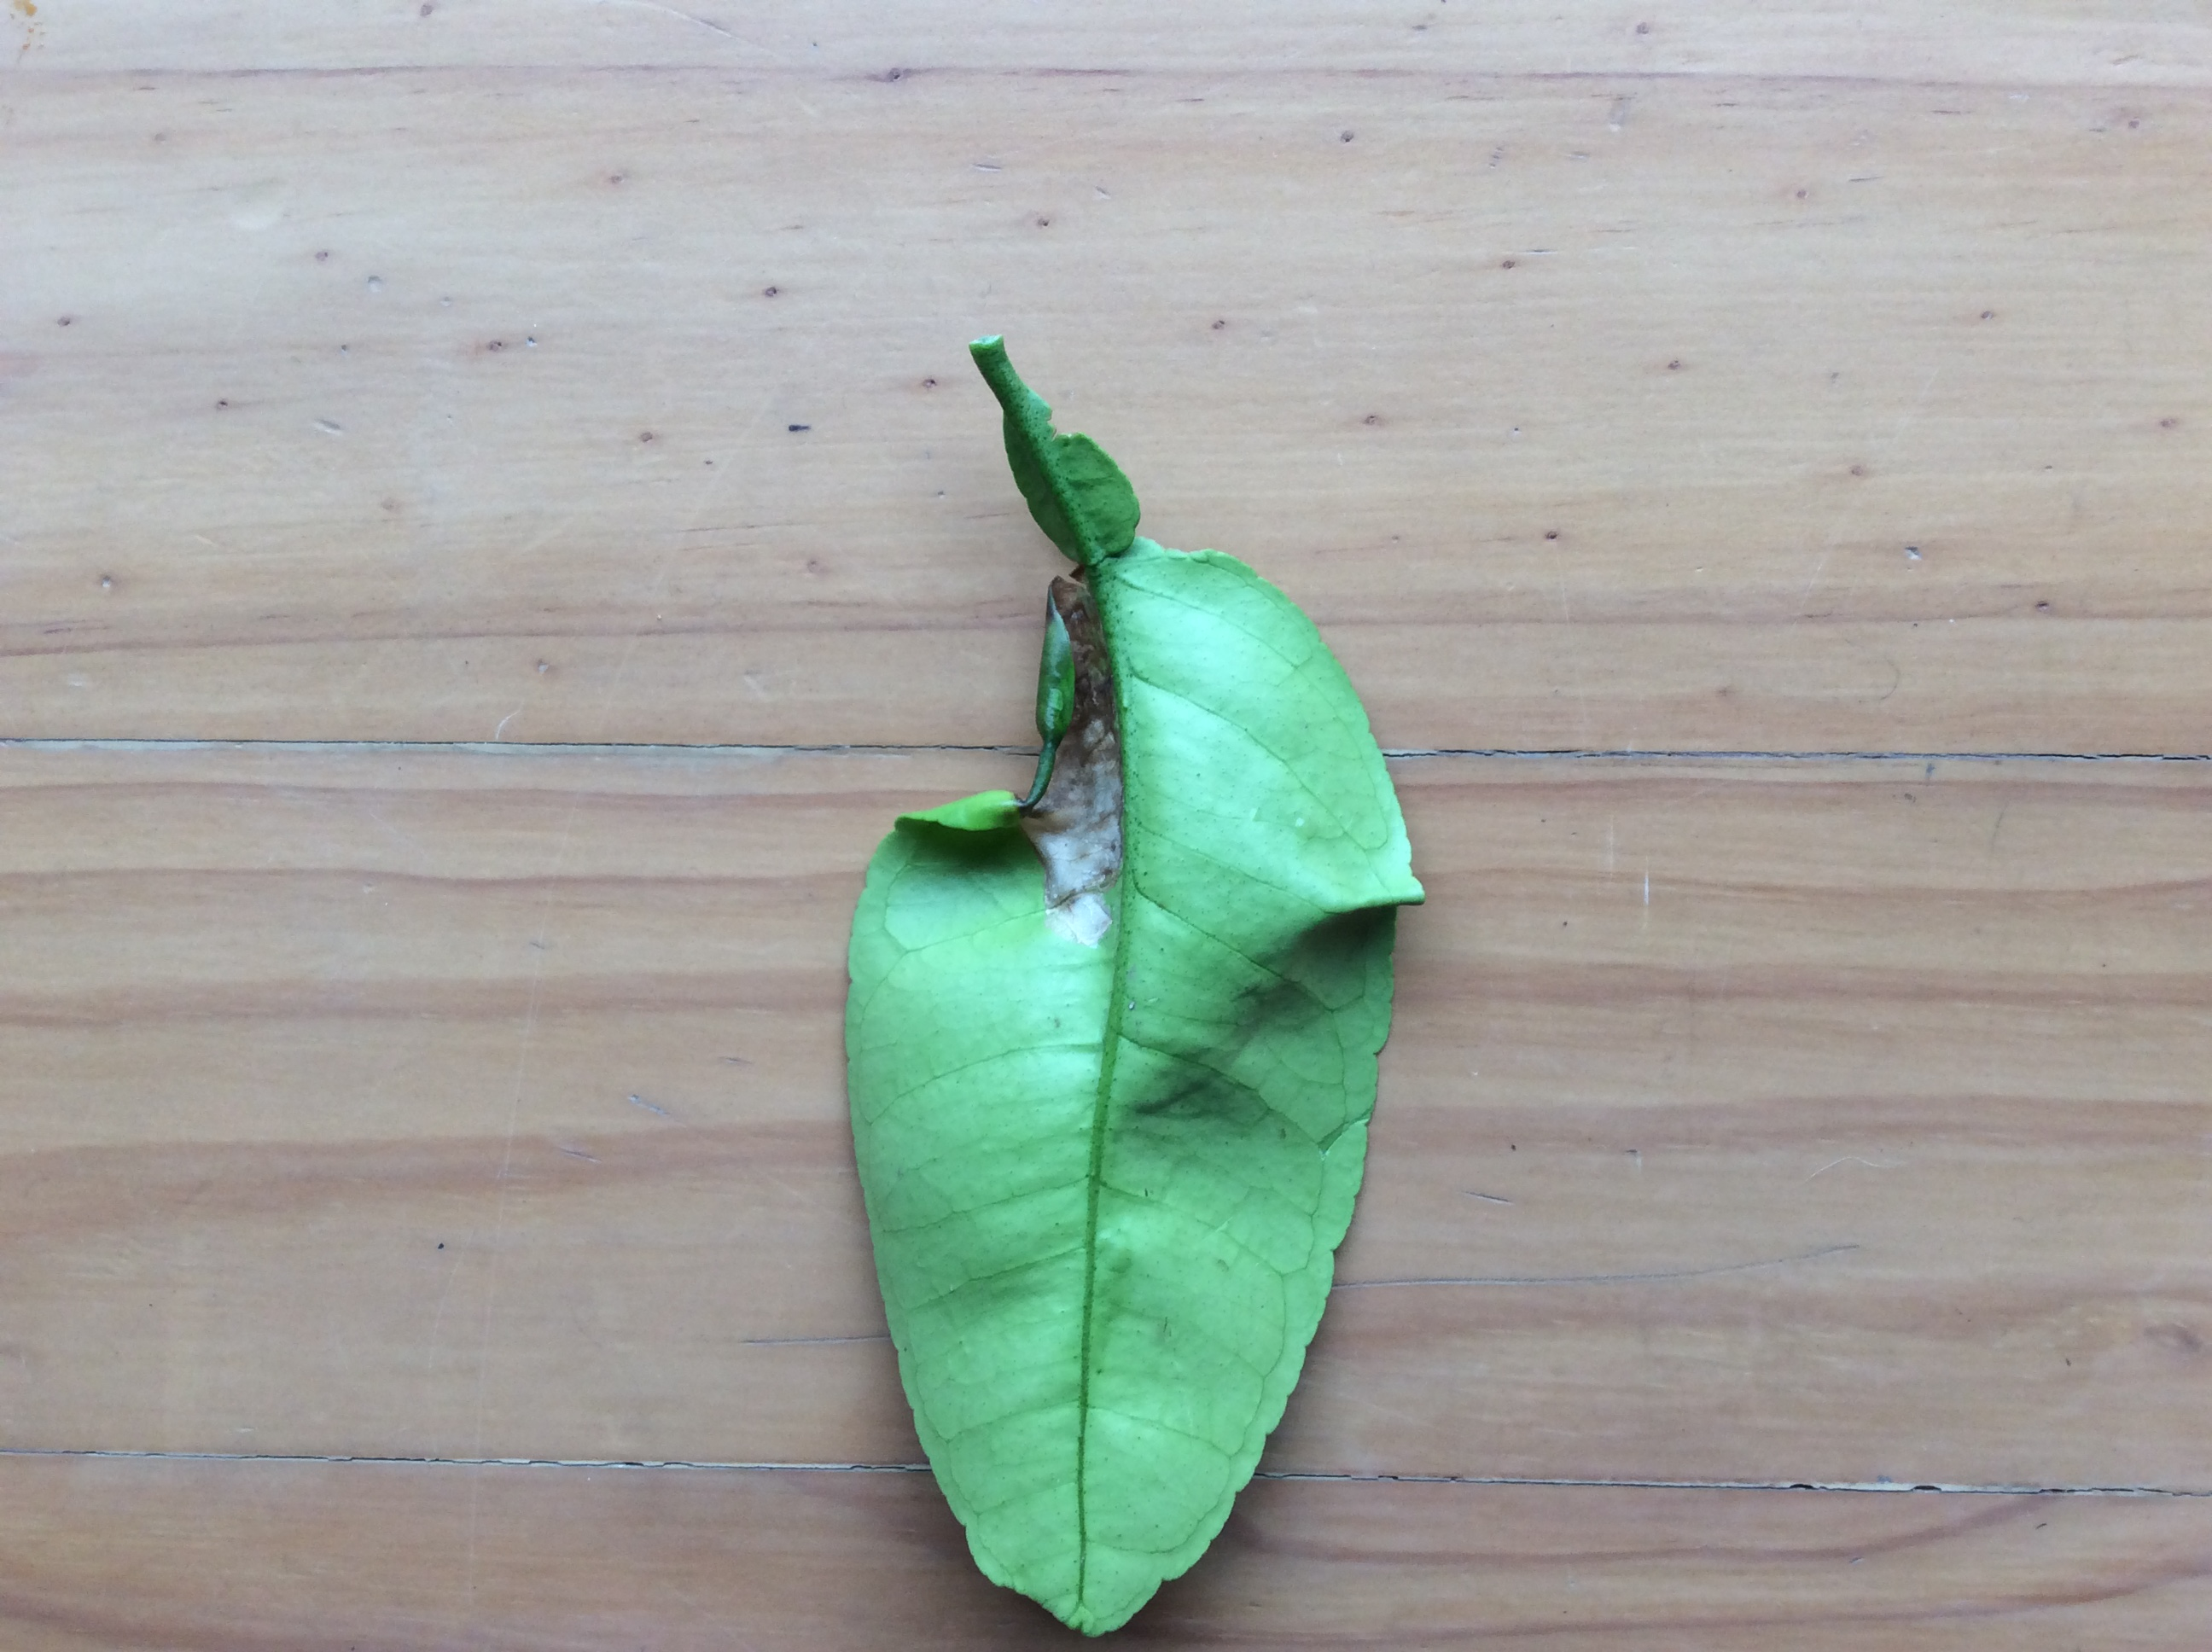 This is the same leaf from the back.